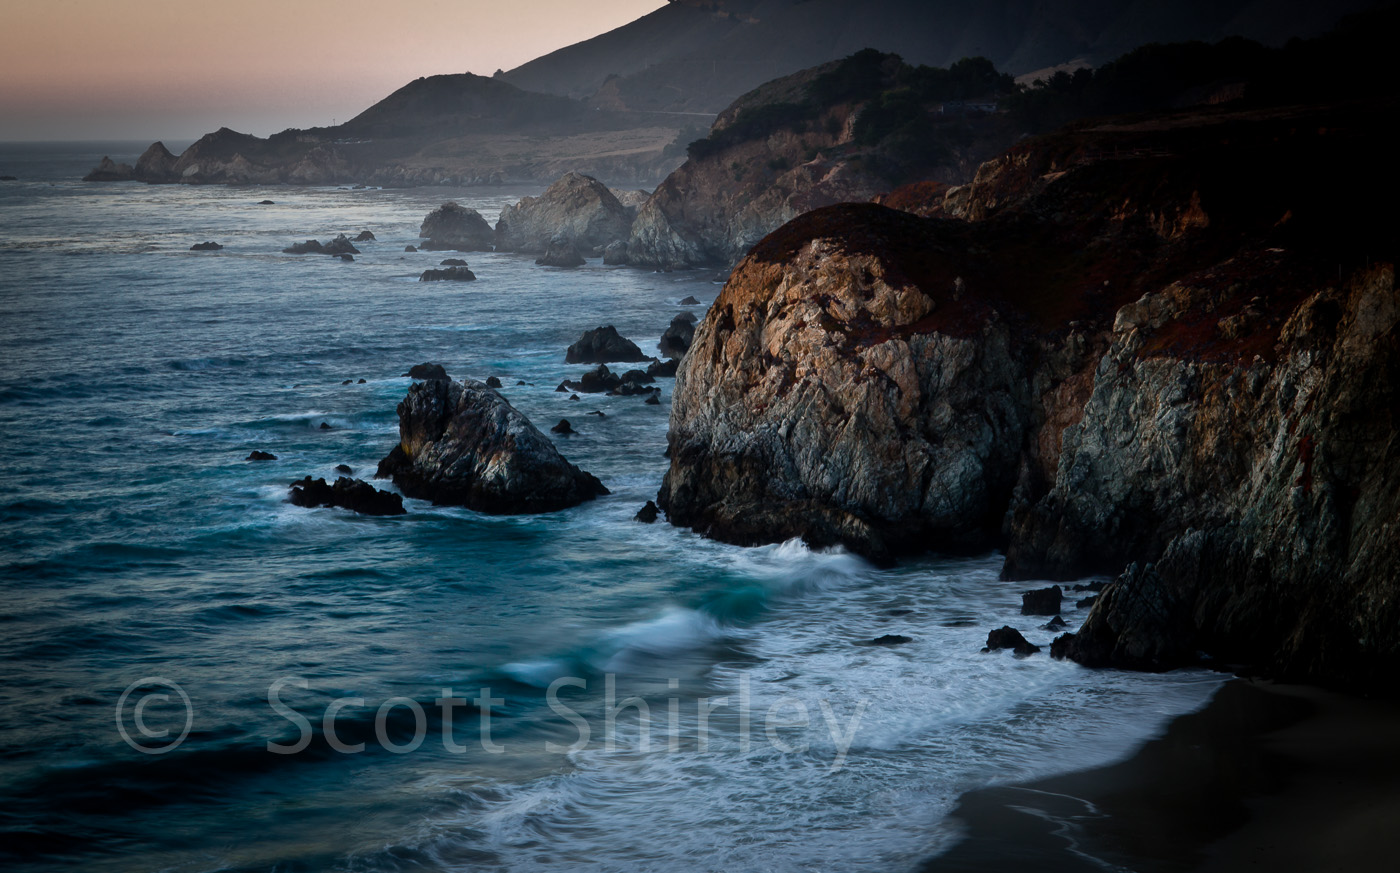 4005_big_sur_california